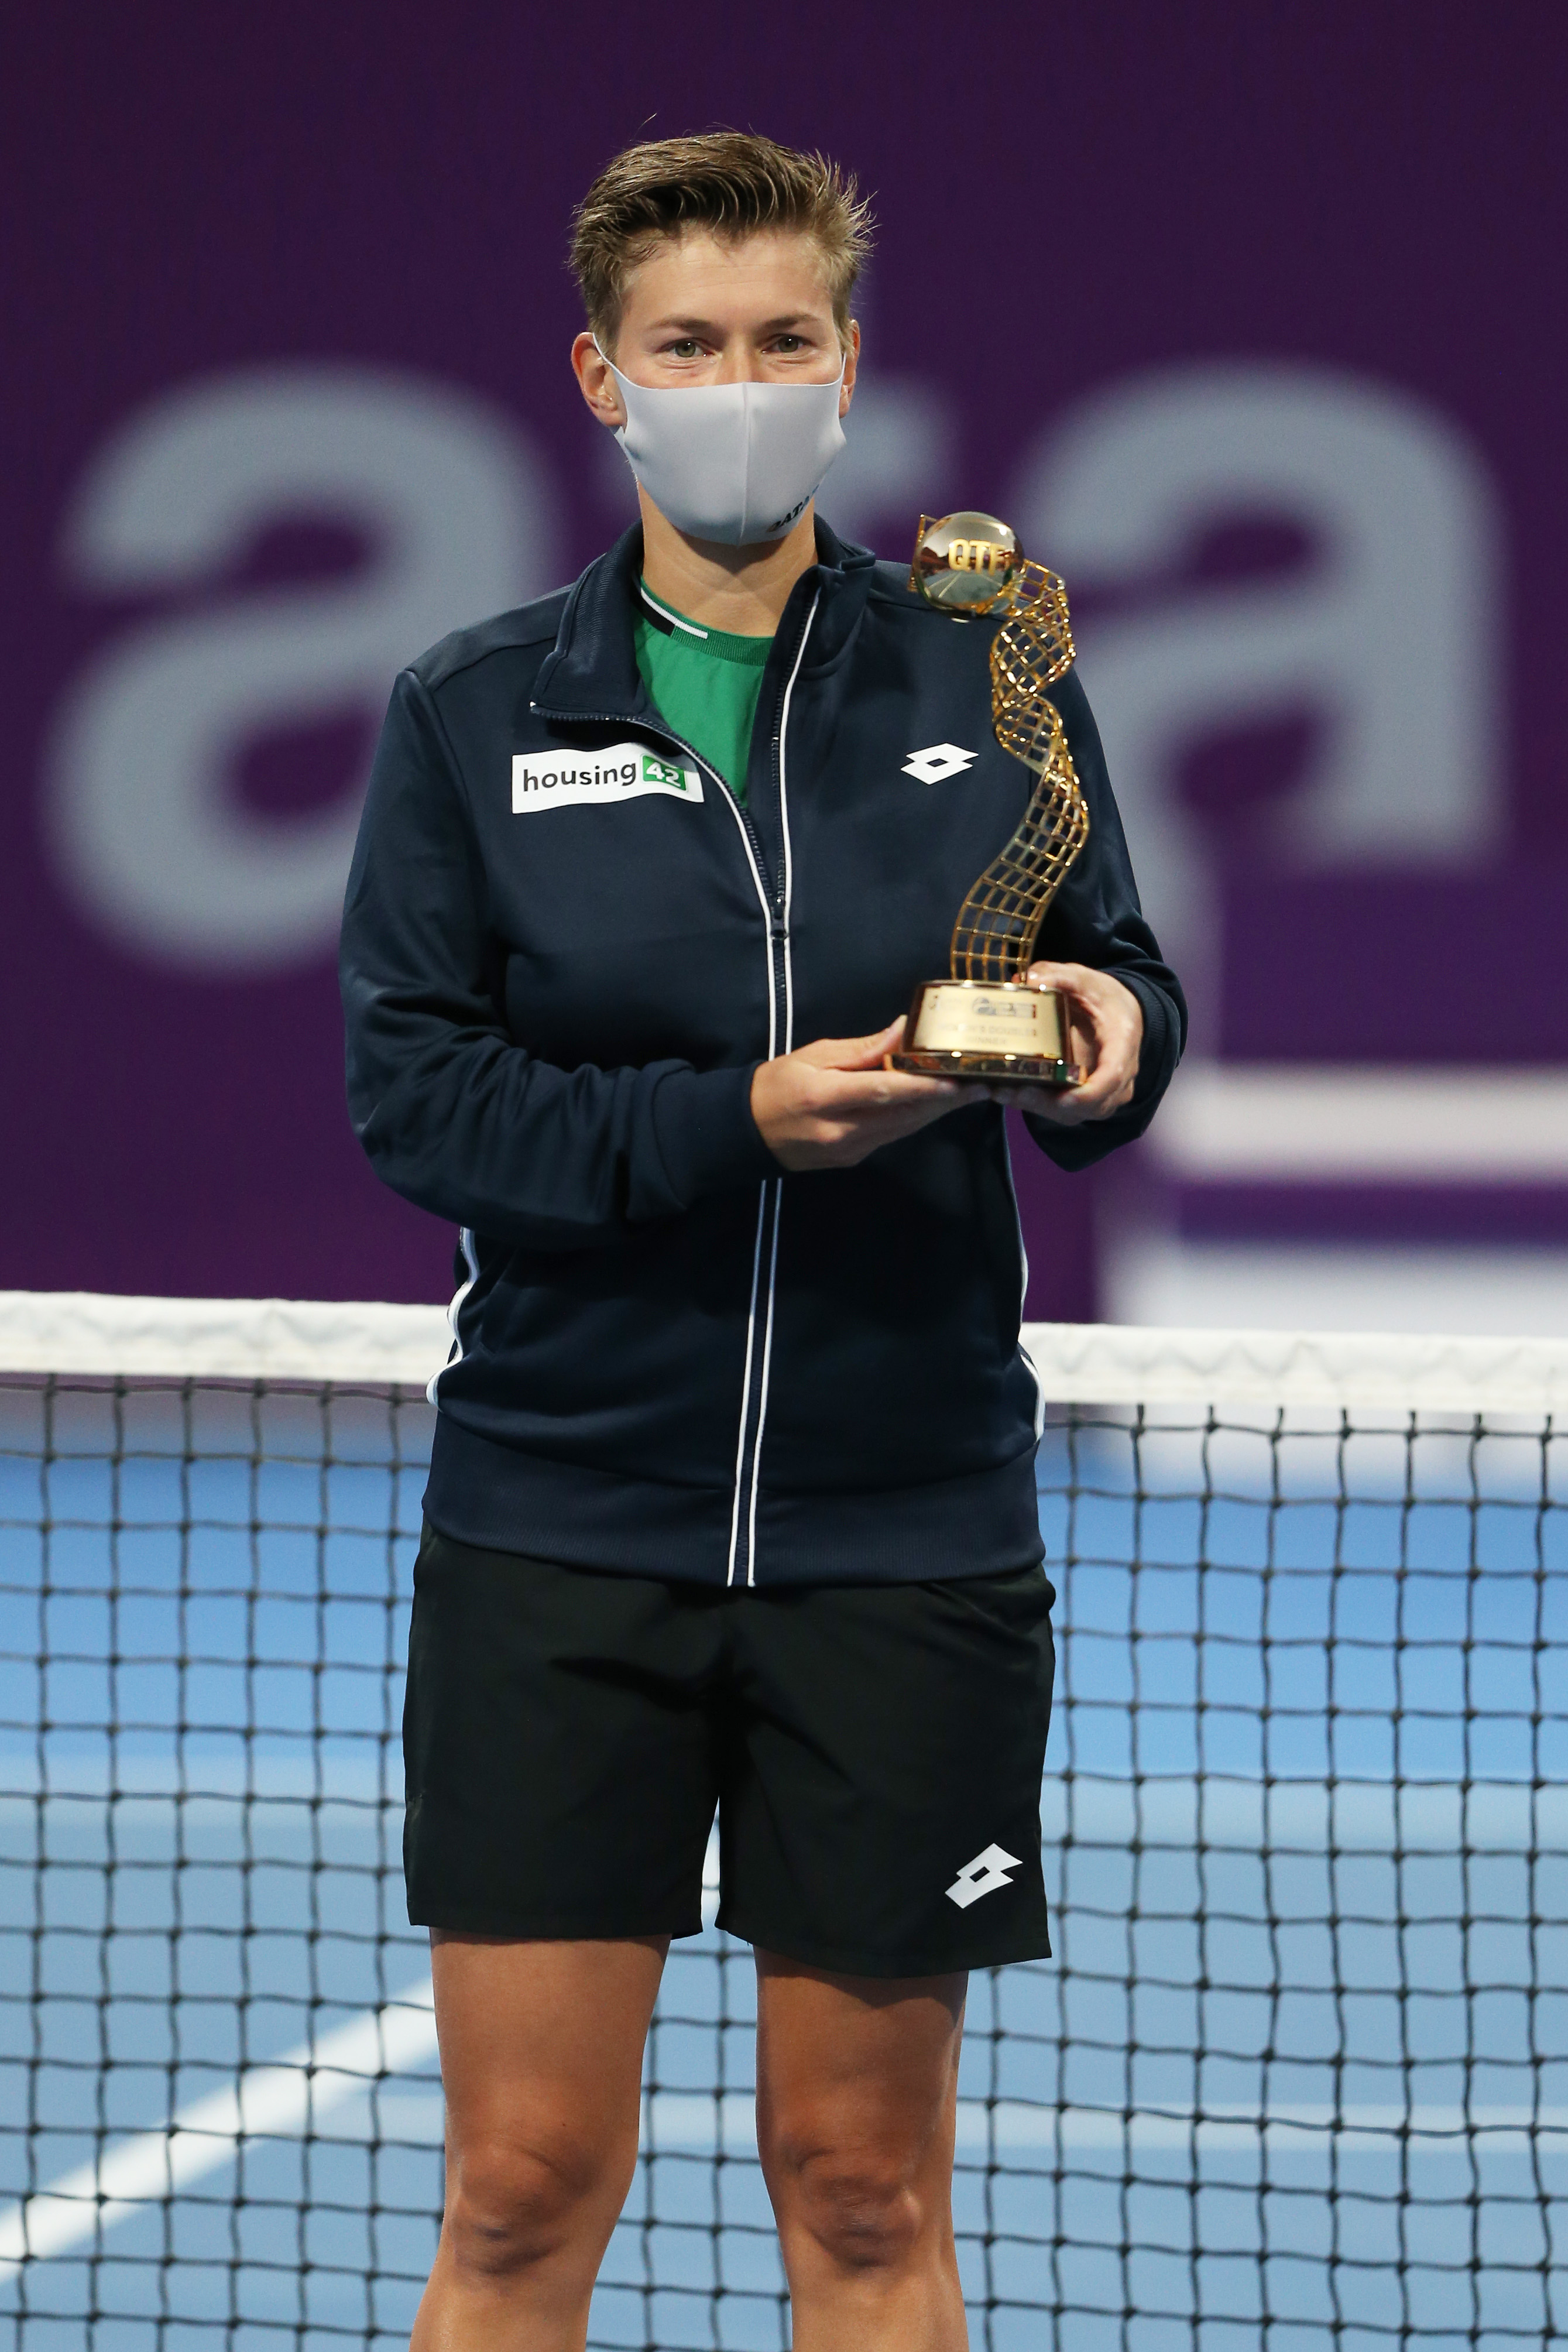 Qatar Total Open 2021 - Day Five